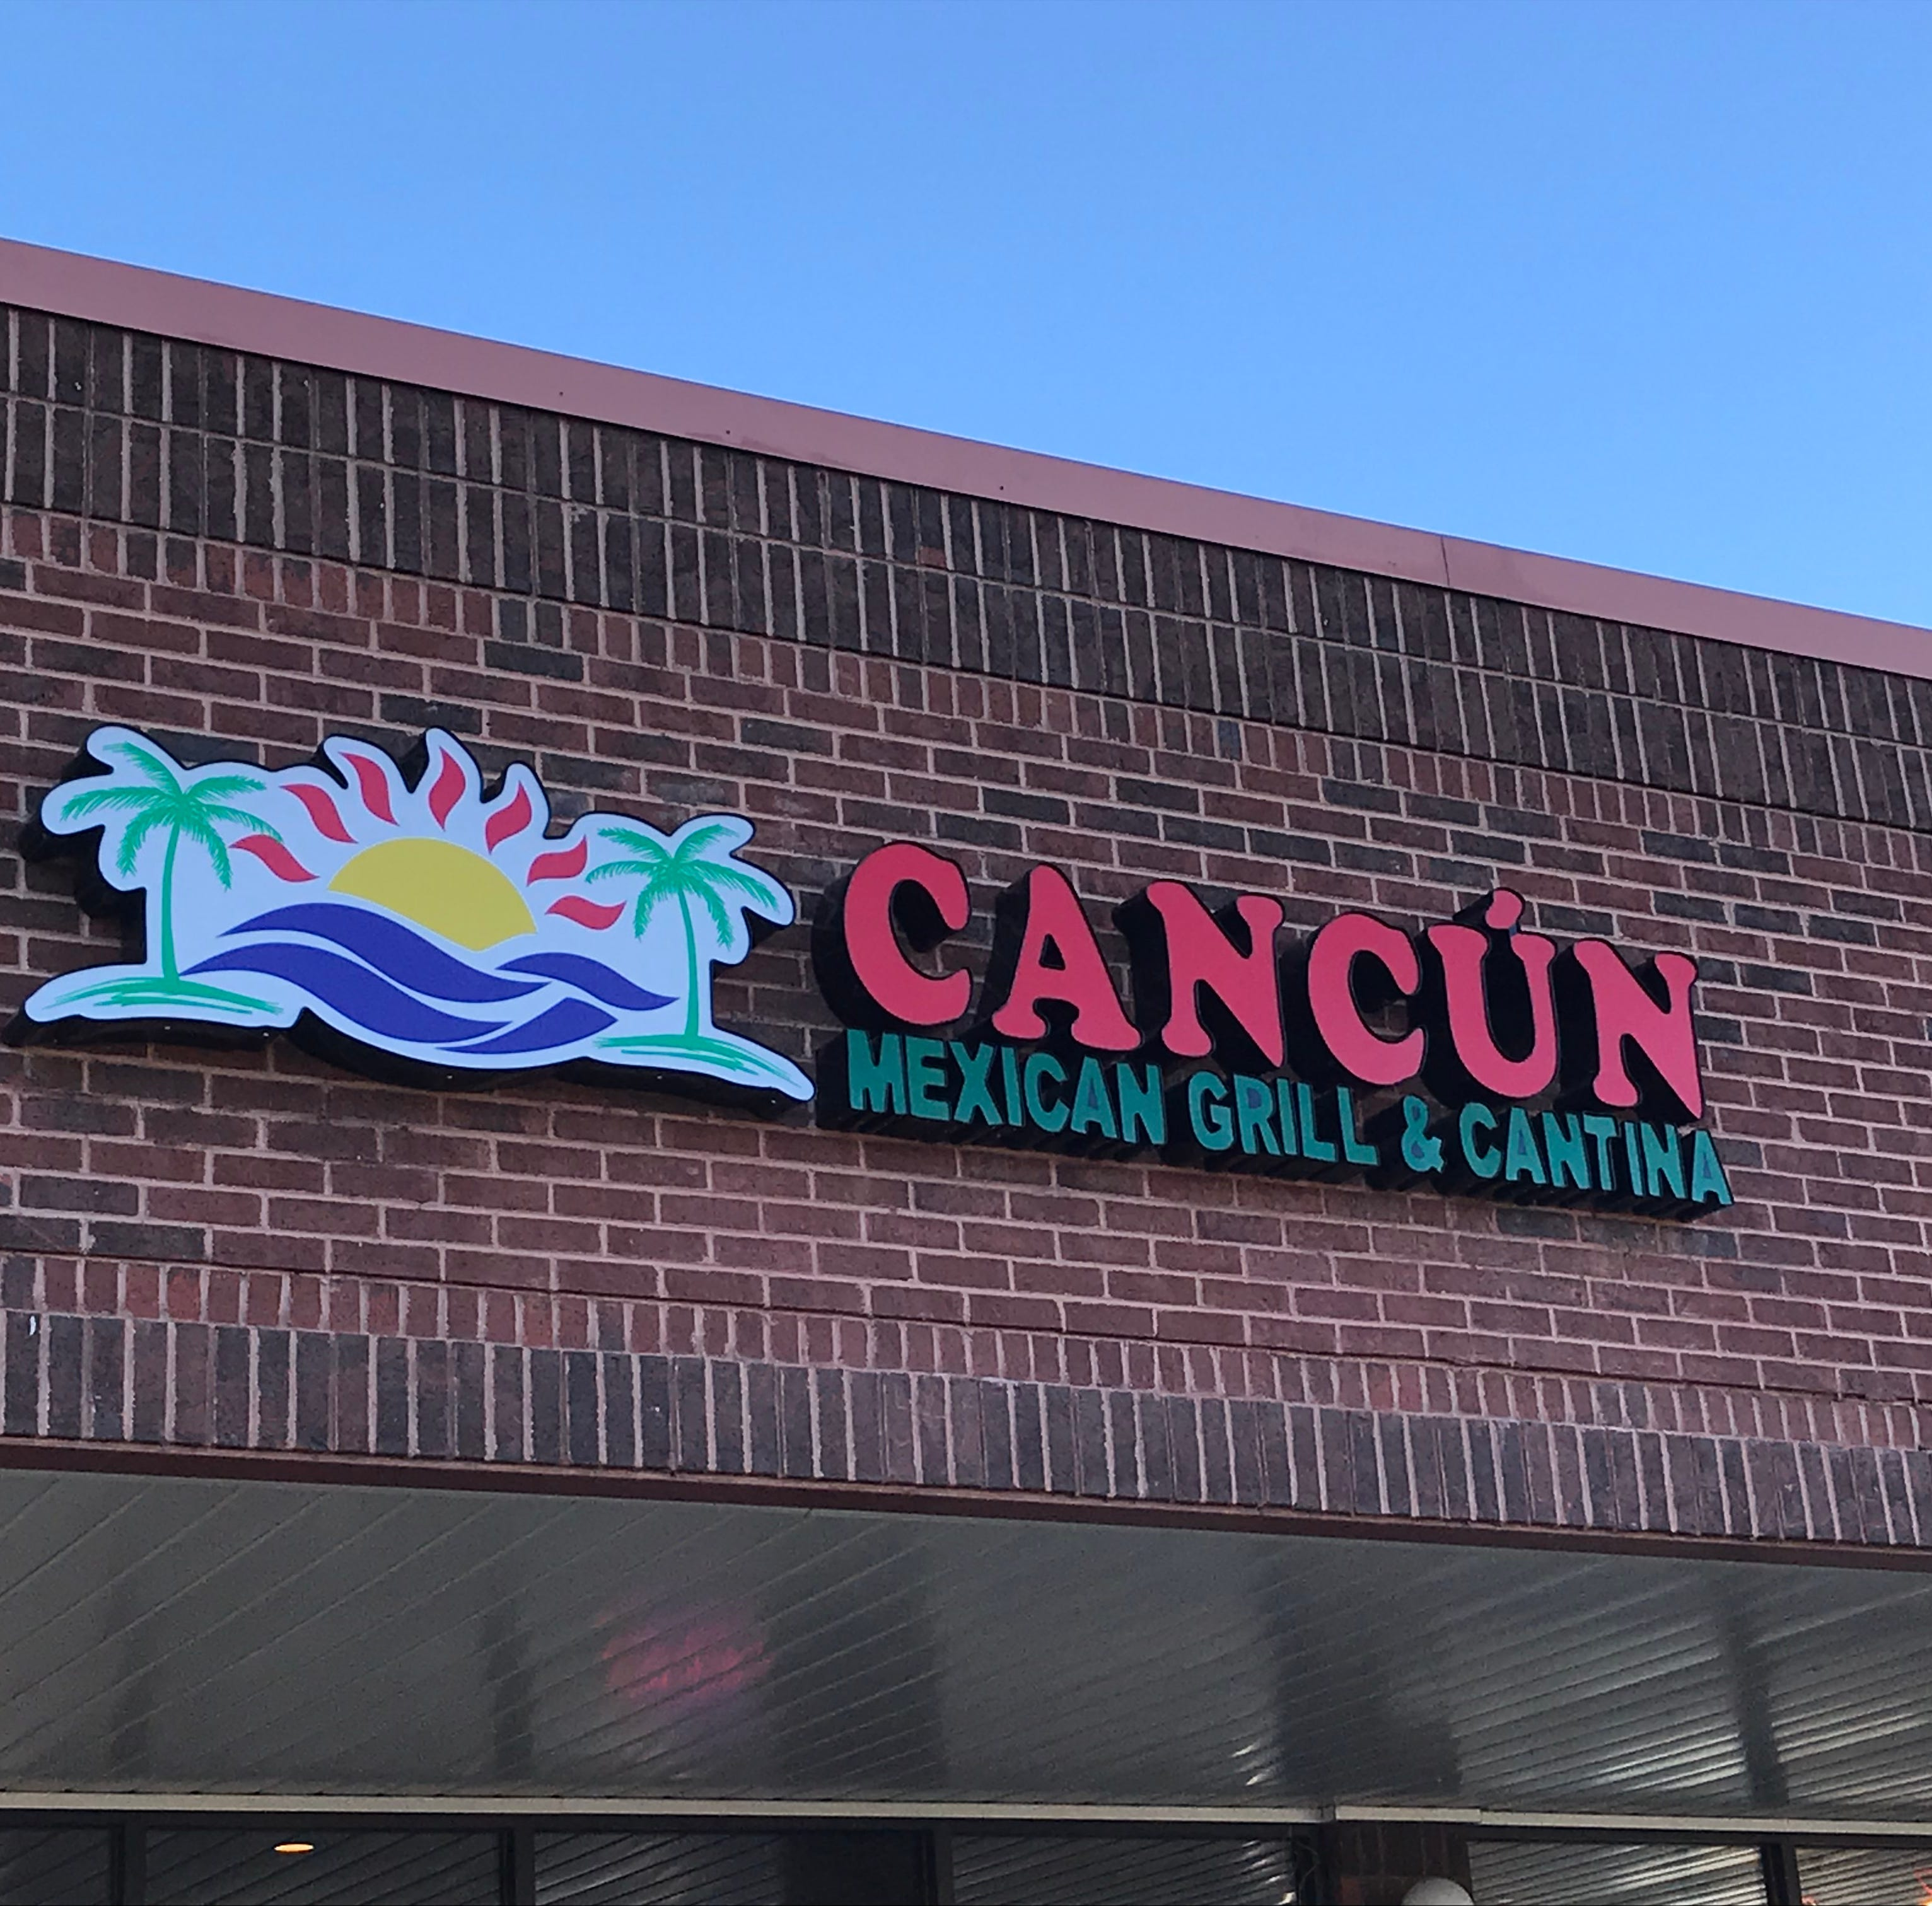 Cancun Mexican Grill & Cantina opens in Fort Collins